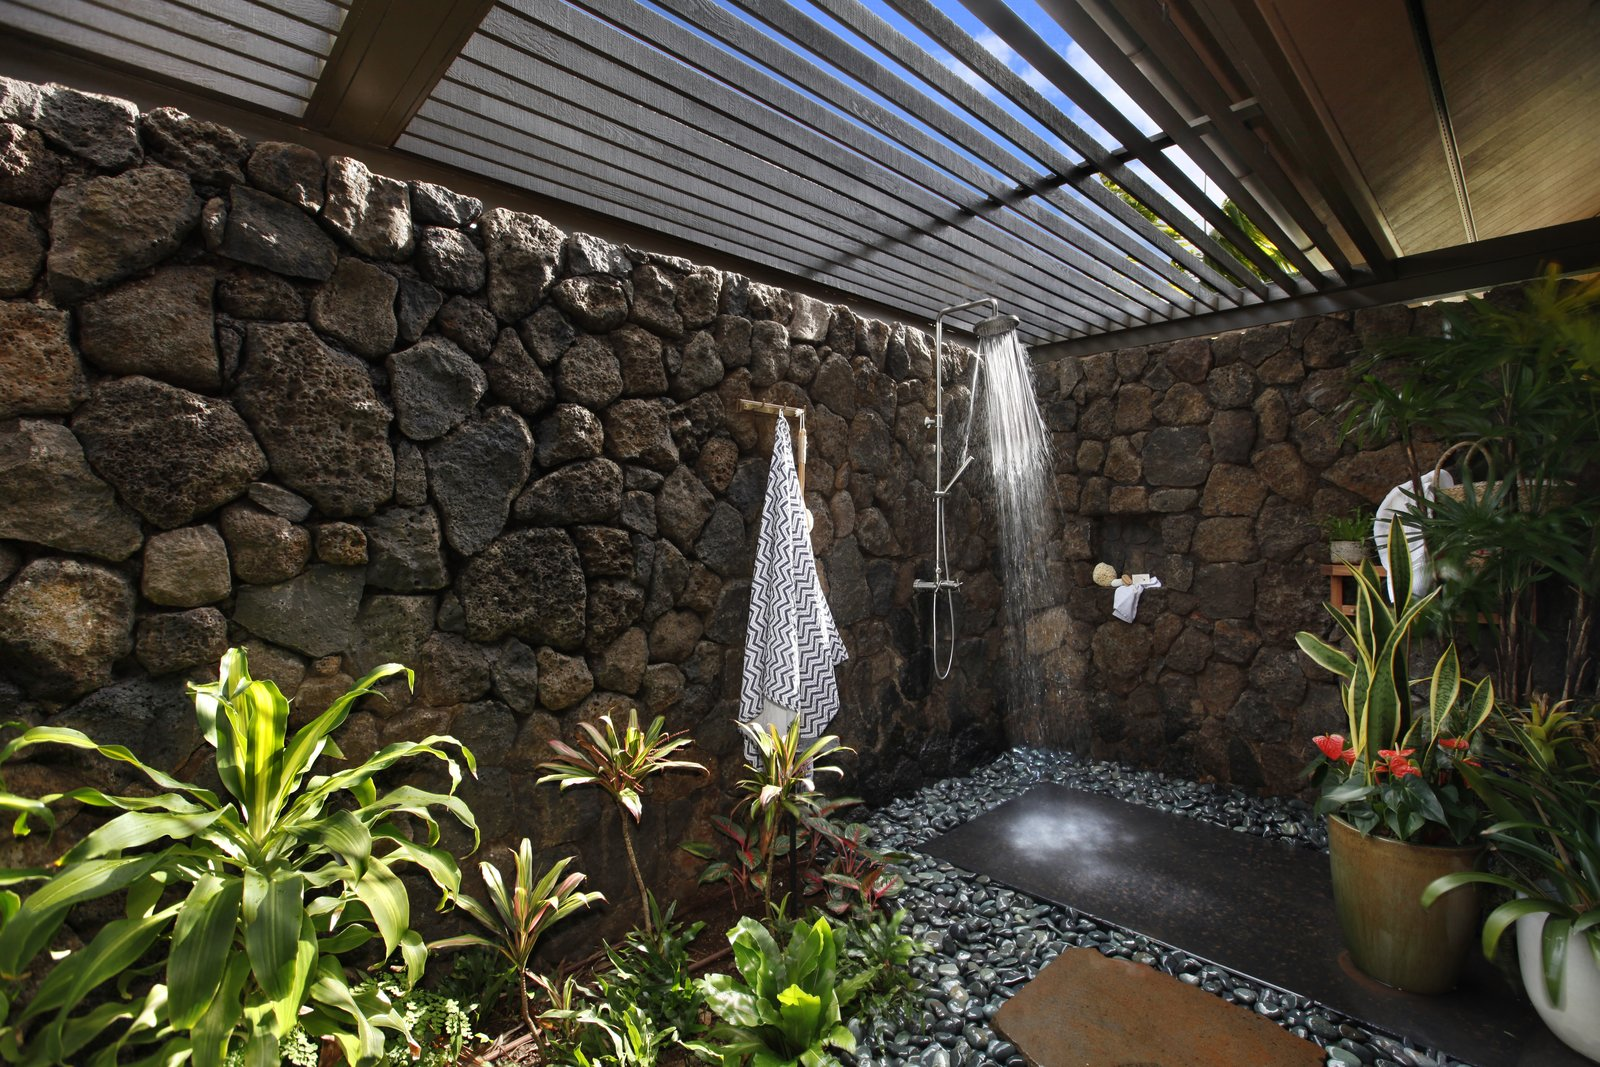 The garden shower.